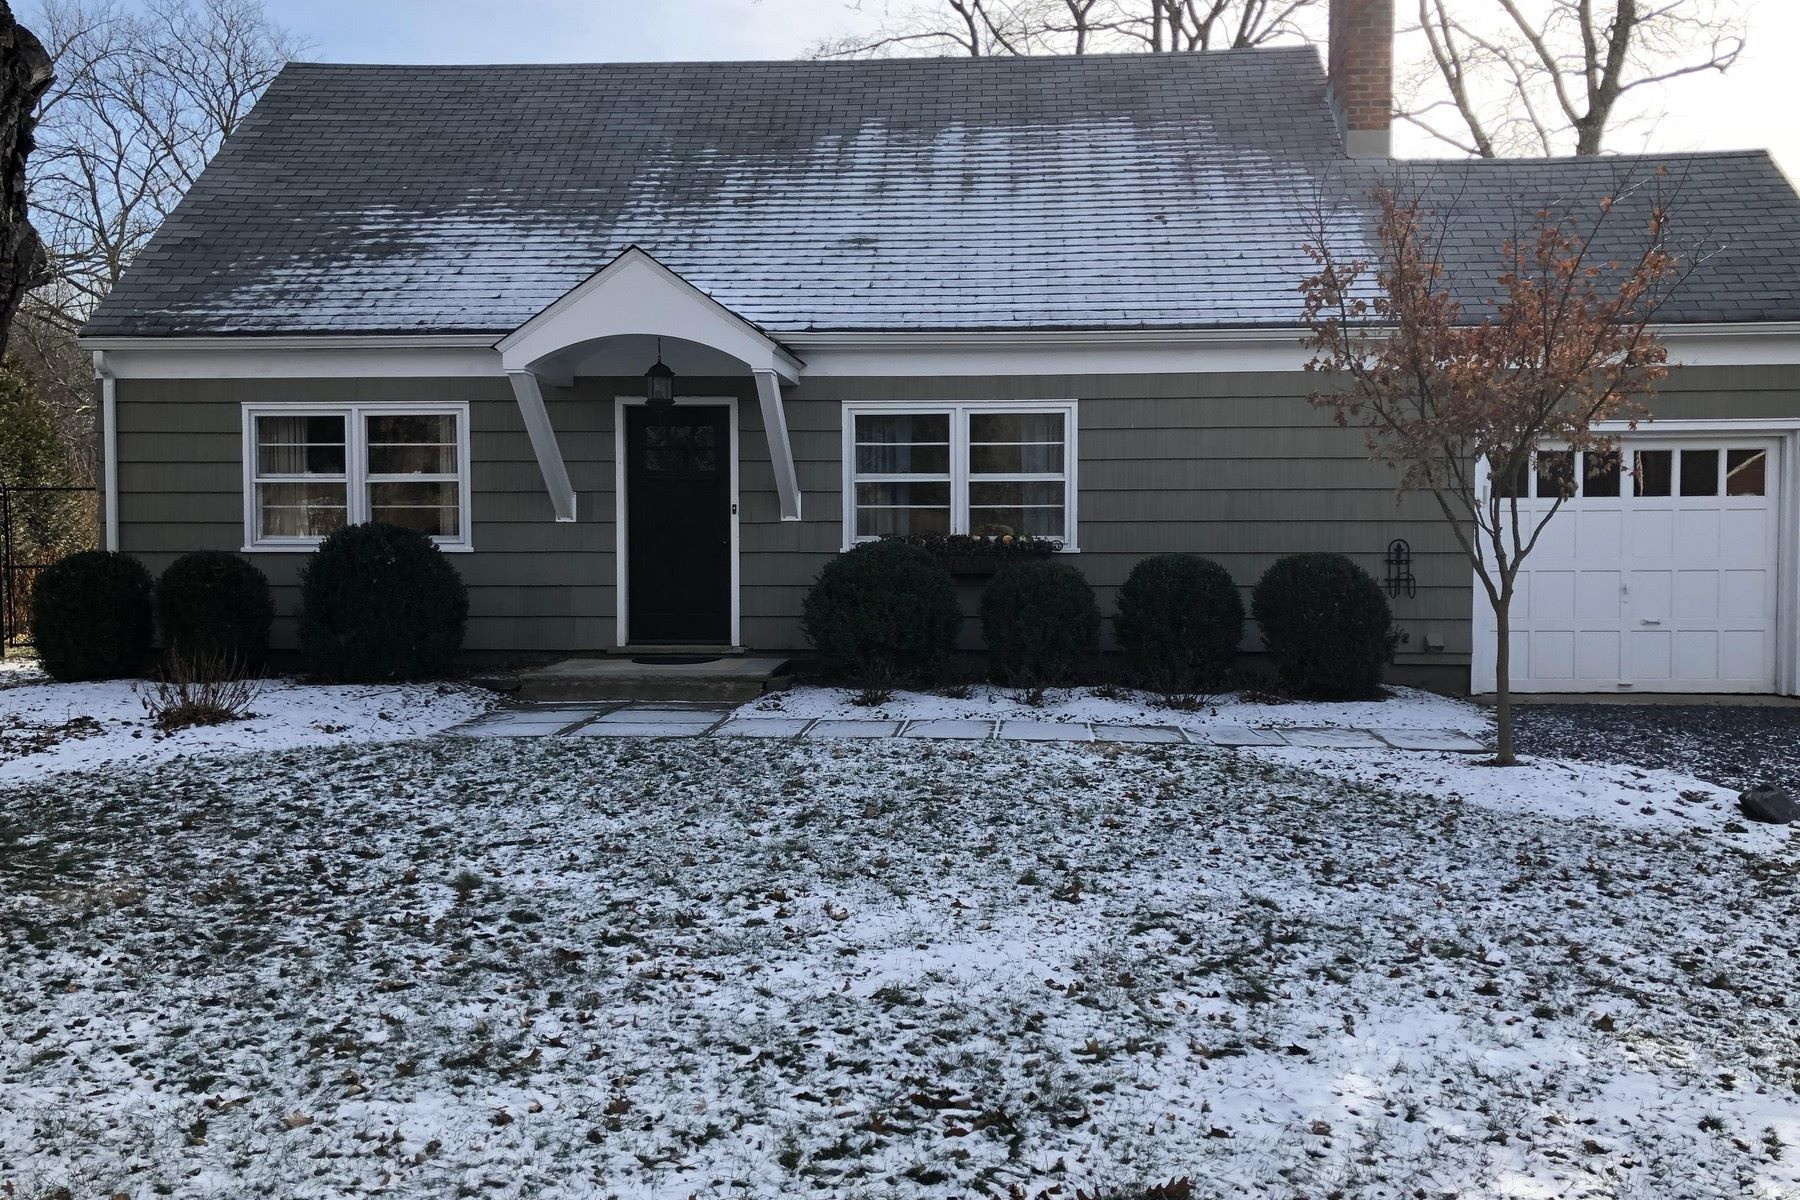 Single Family Home for Rent at Charming Cape 369 Green Village Road Chatham Twp, New Jersey 07935 United States